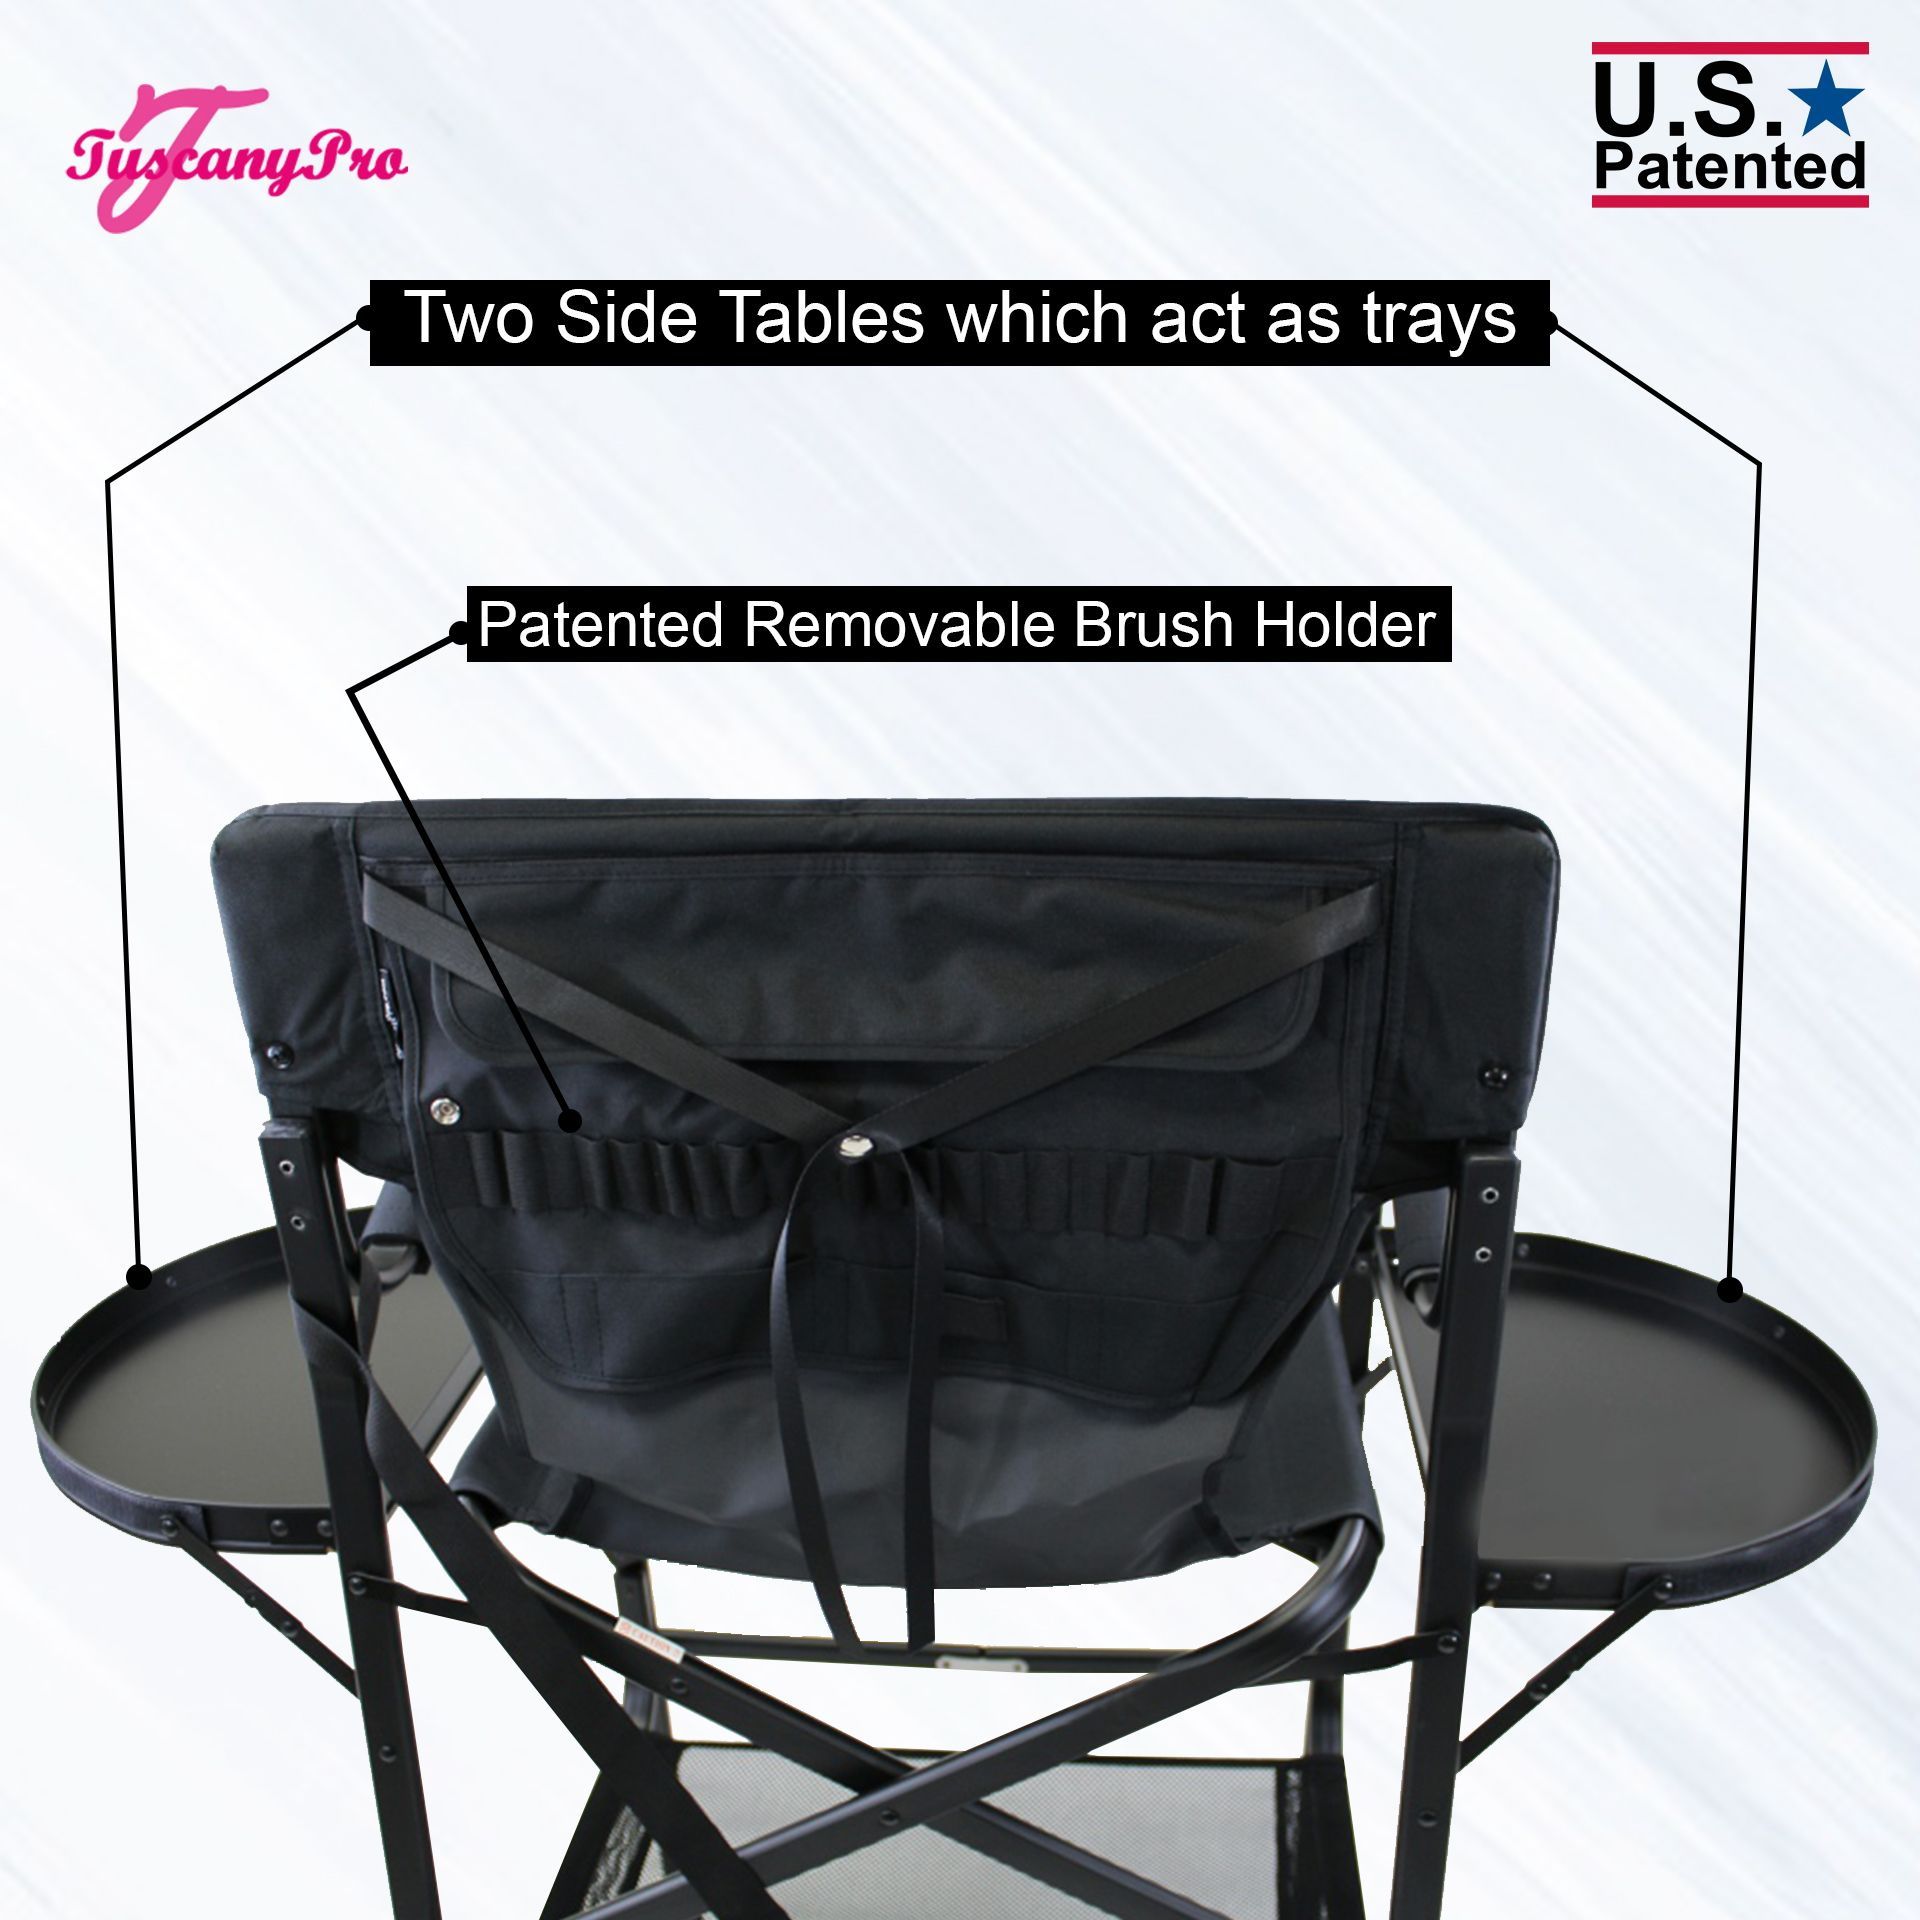 "Tuscany Pro Tall Makeup Artist Portable Chair -29"" Seat Height"